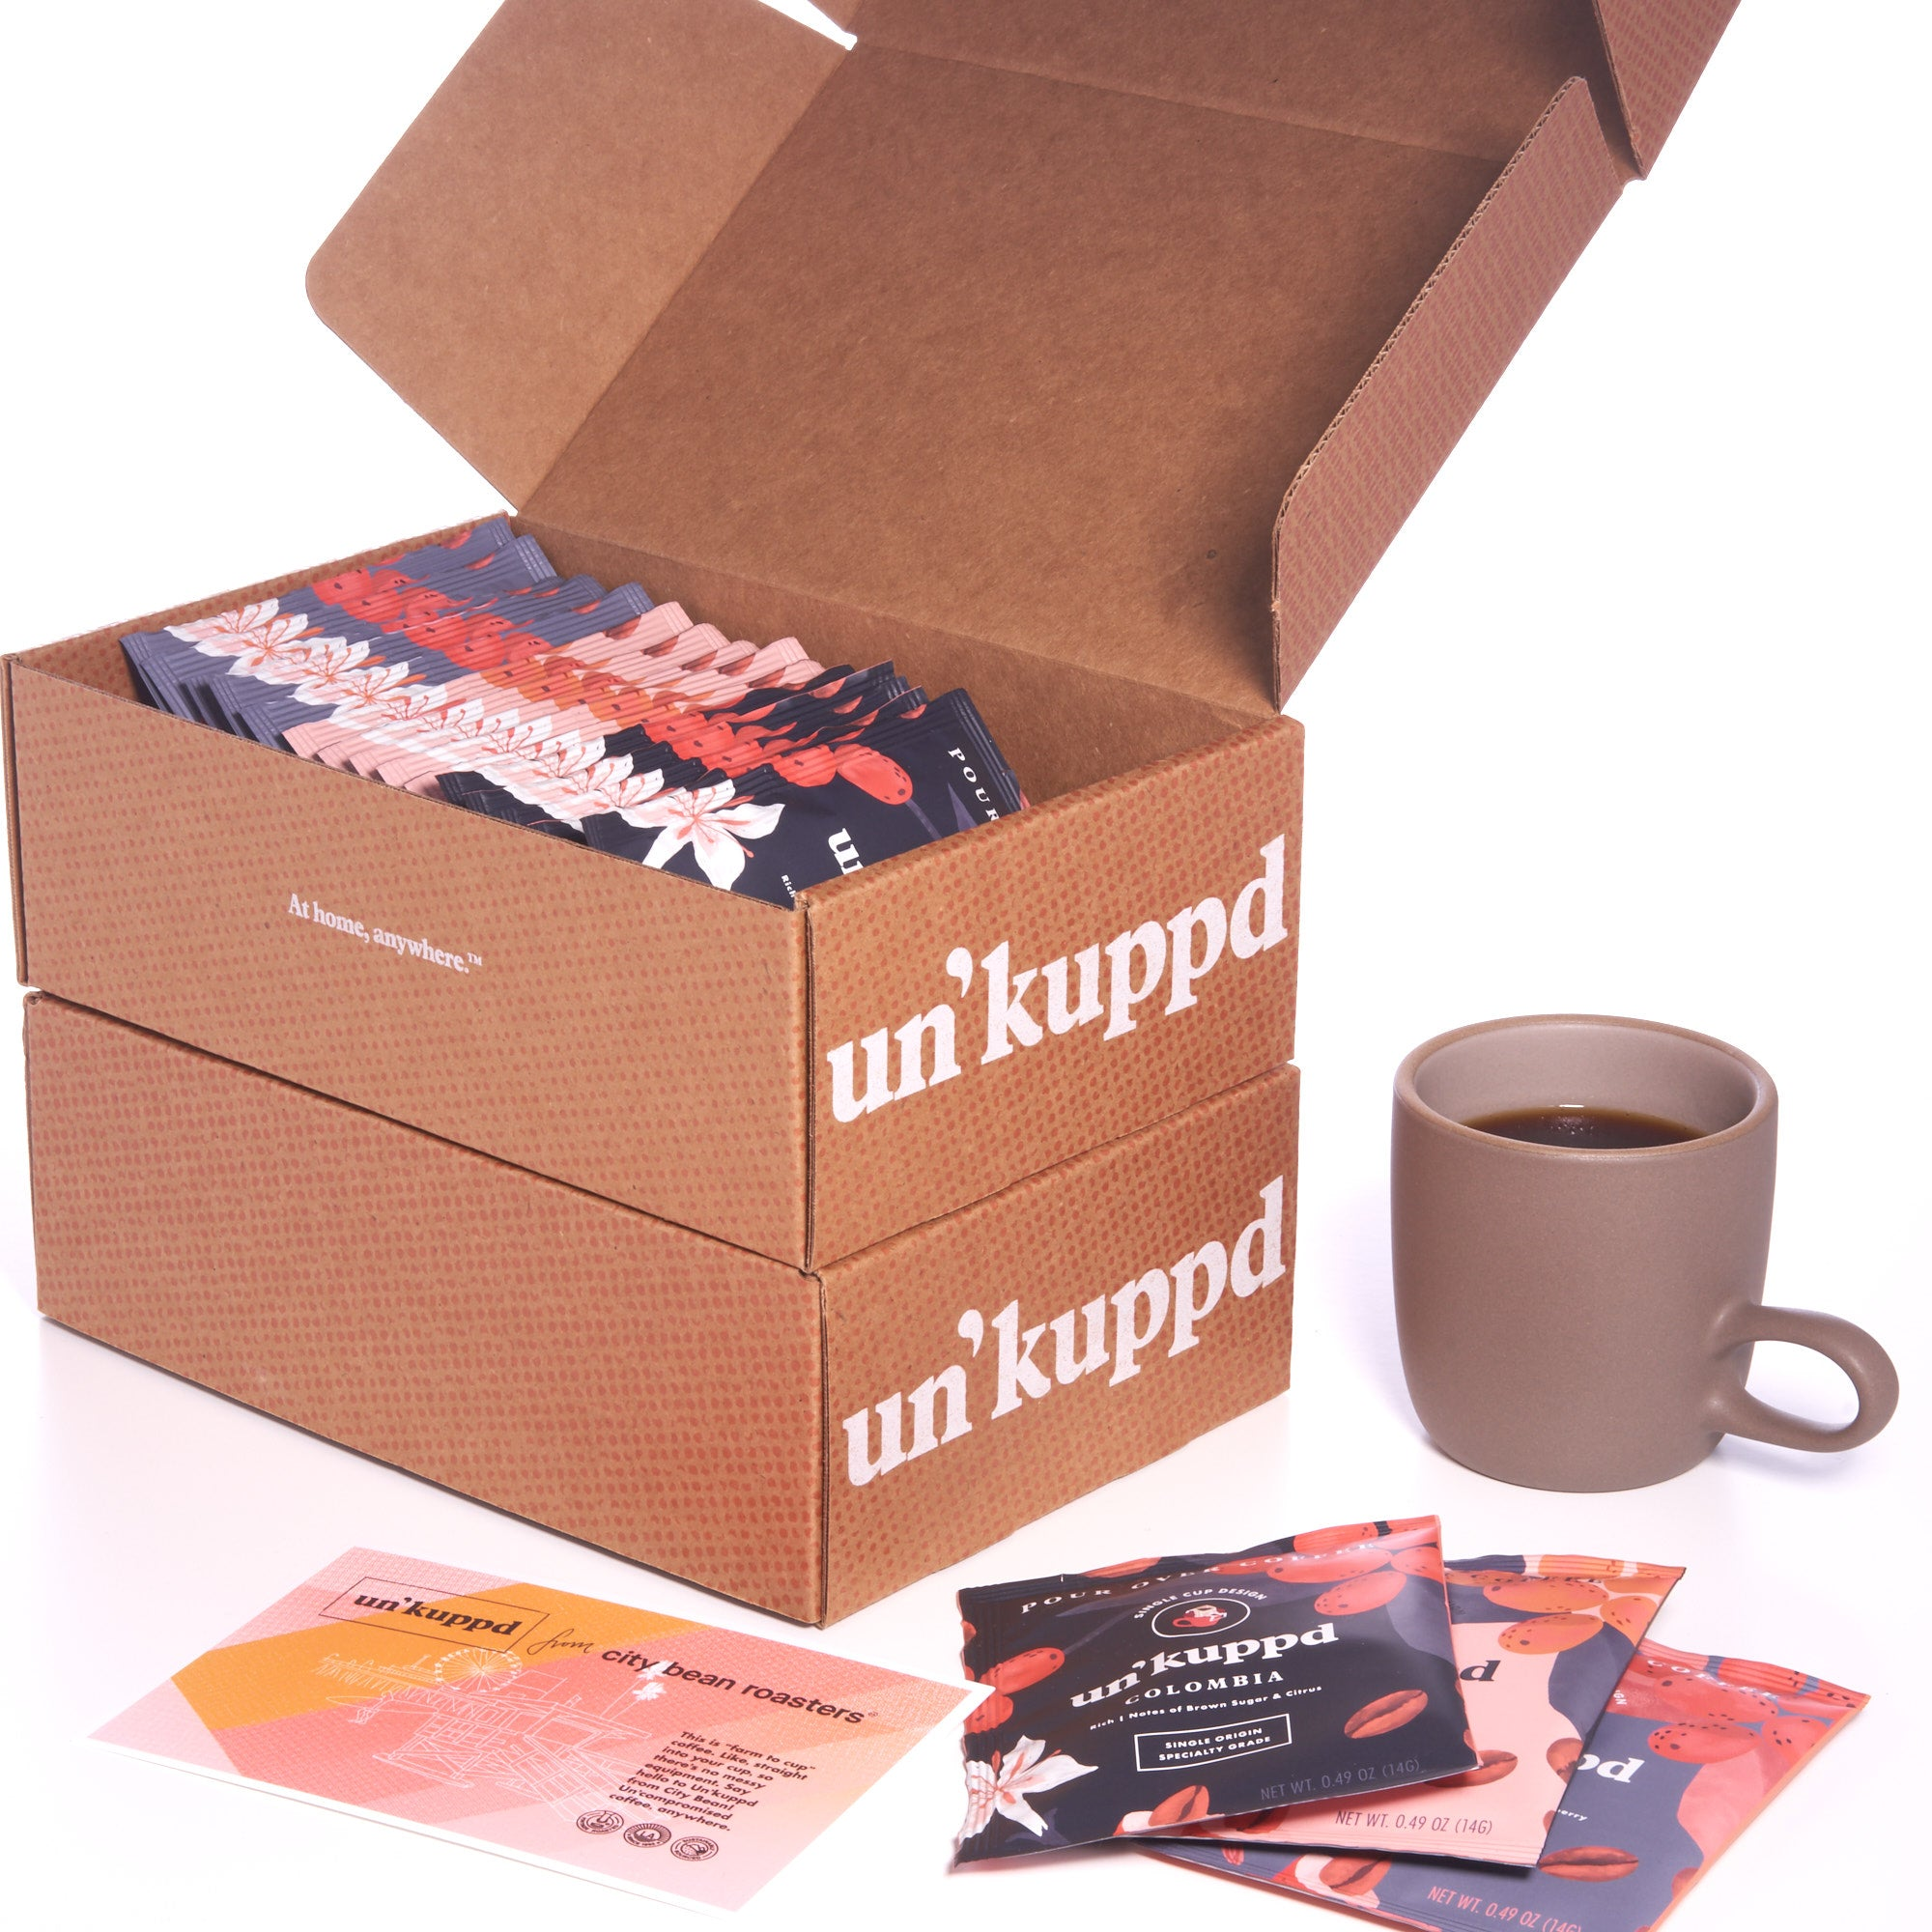 Un'kuppd 30 Pack (Subscription)